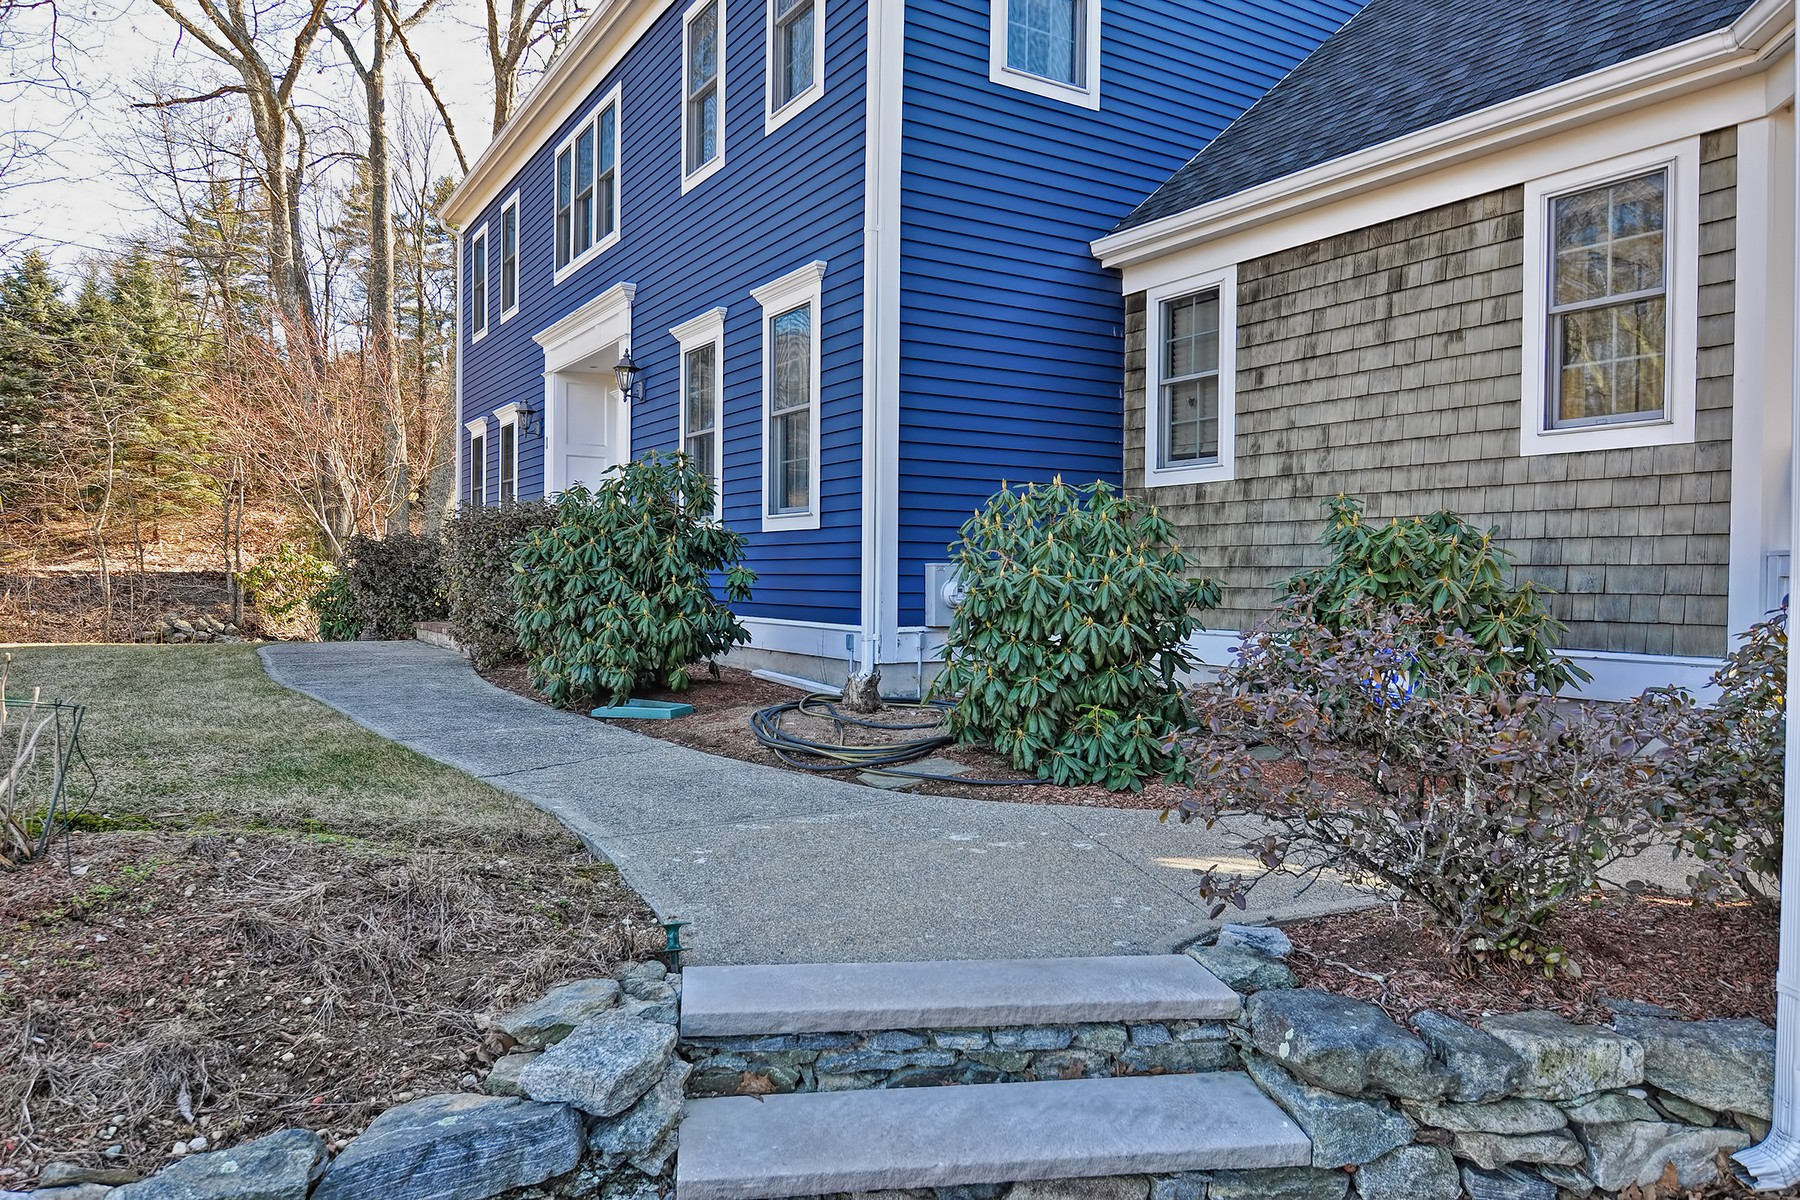 Single Family Home for Sale at Spacious Colonial 1 Gershom Dr North Grafton, Massachusetts 01536 United States